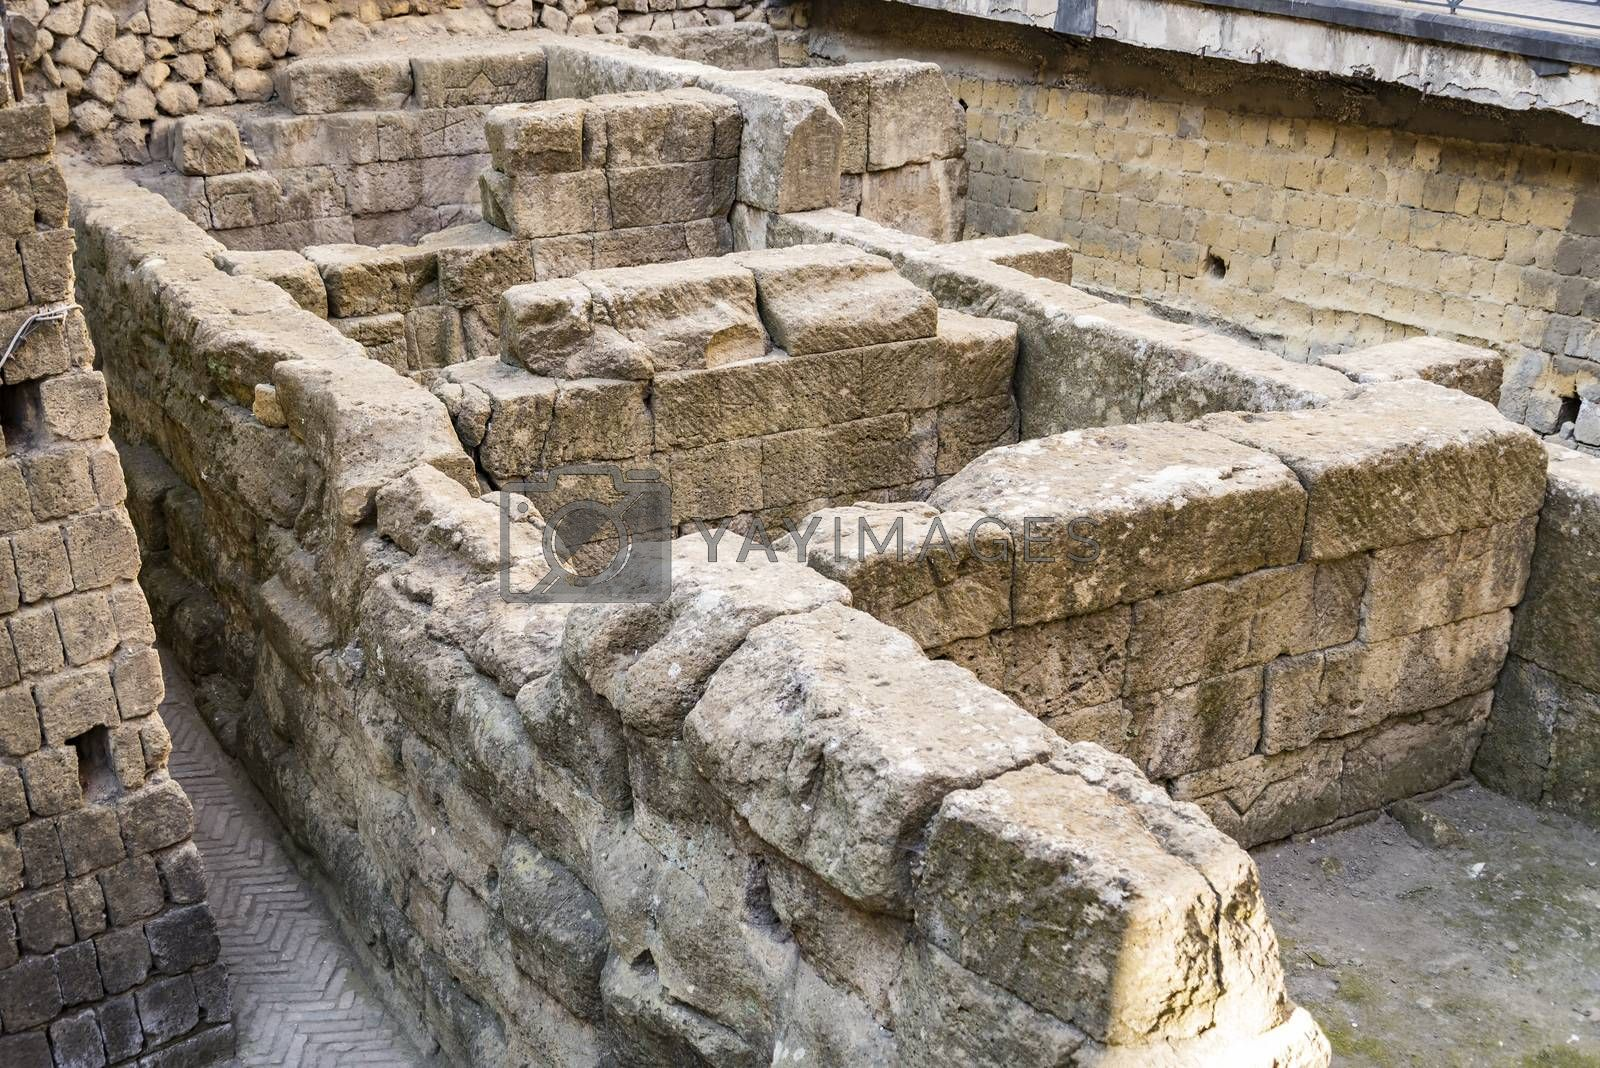 Ruins of the greek walls in Piazza bellini, Naples, Italy